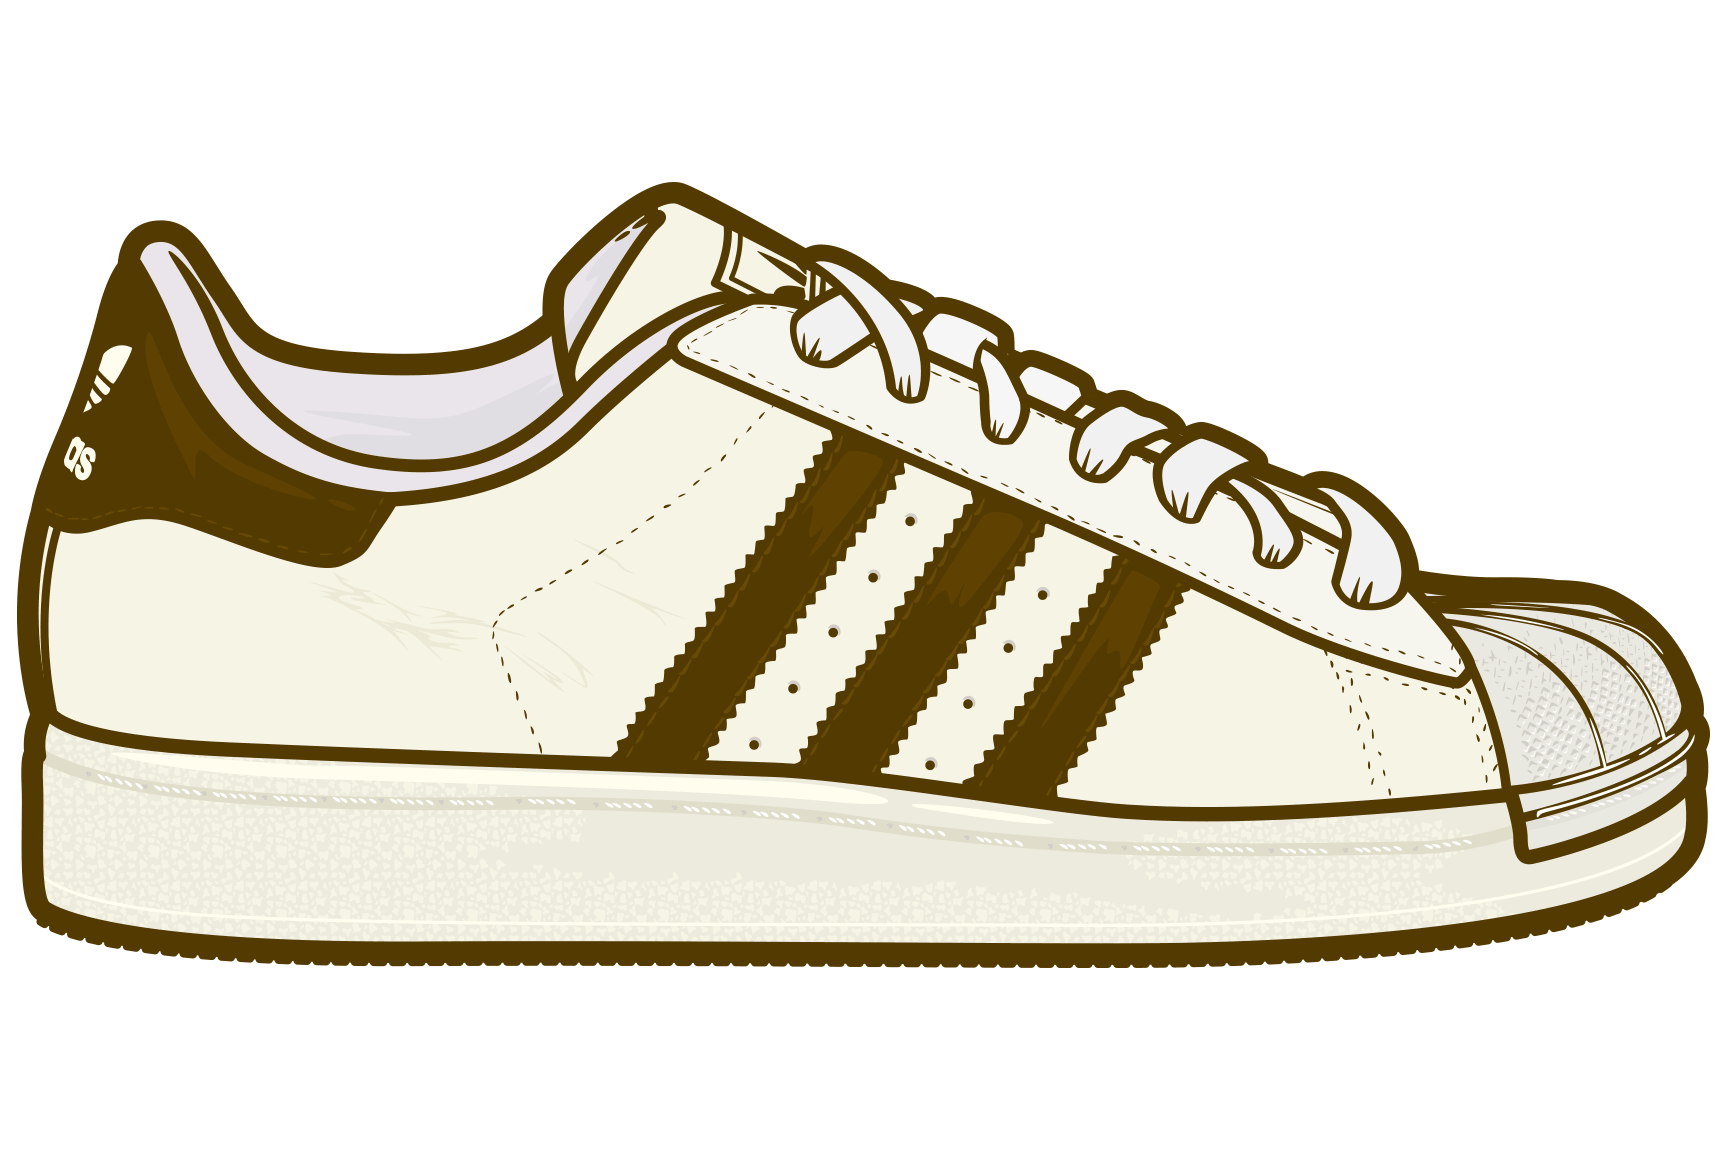 picture royalty free ADIDAS Superstar II